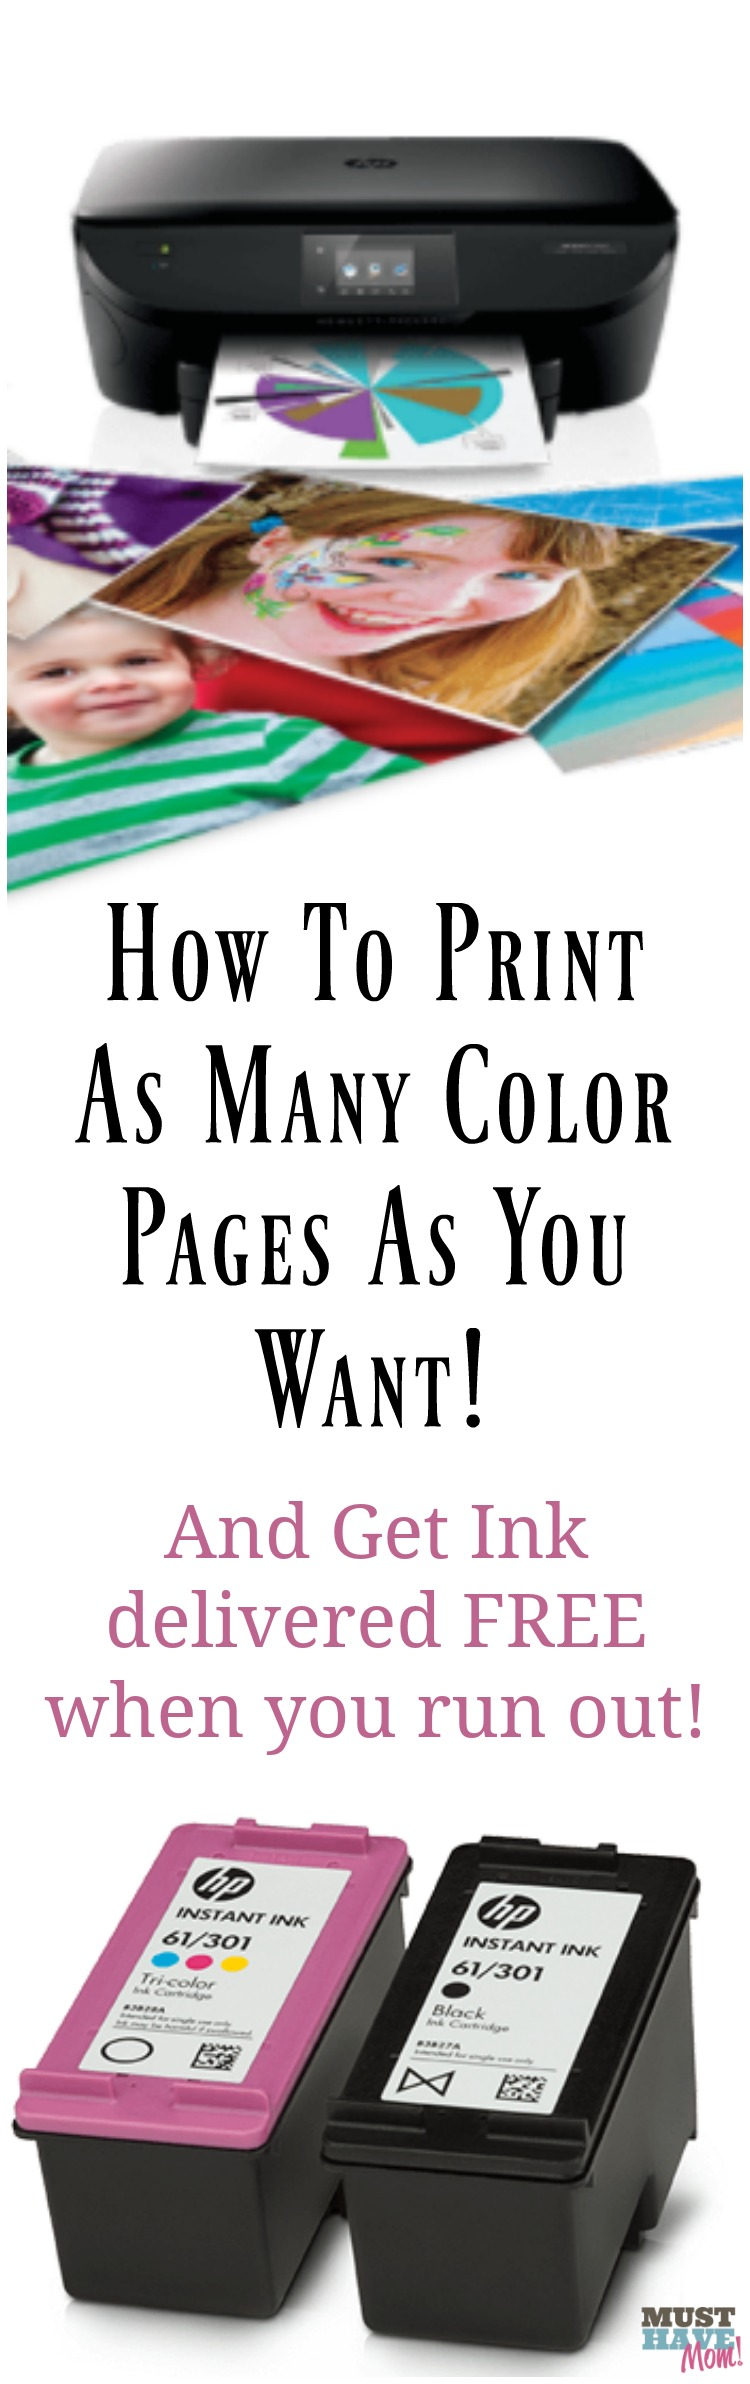 See the secret to getting as much ink as you need! I'll show you how to get authentic HP ink delivered free whenever you need it.